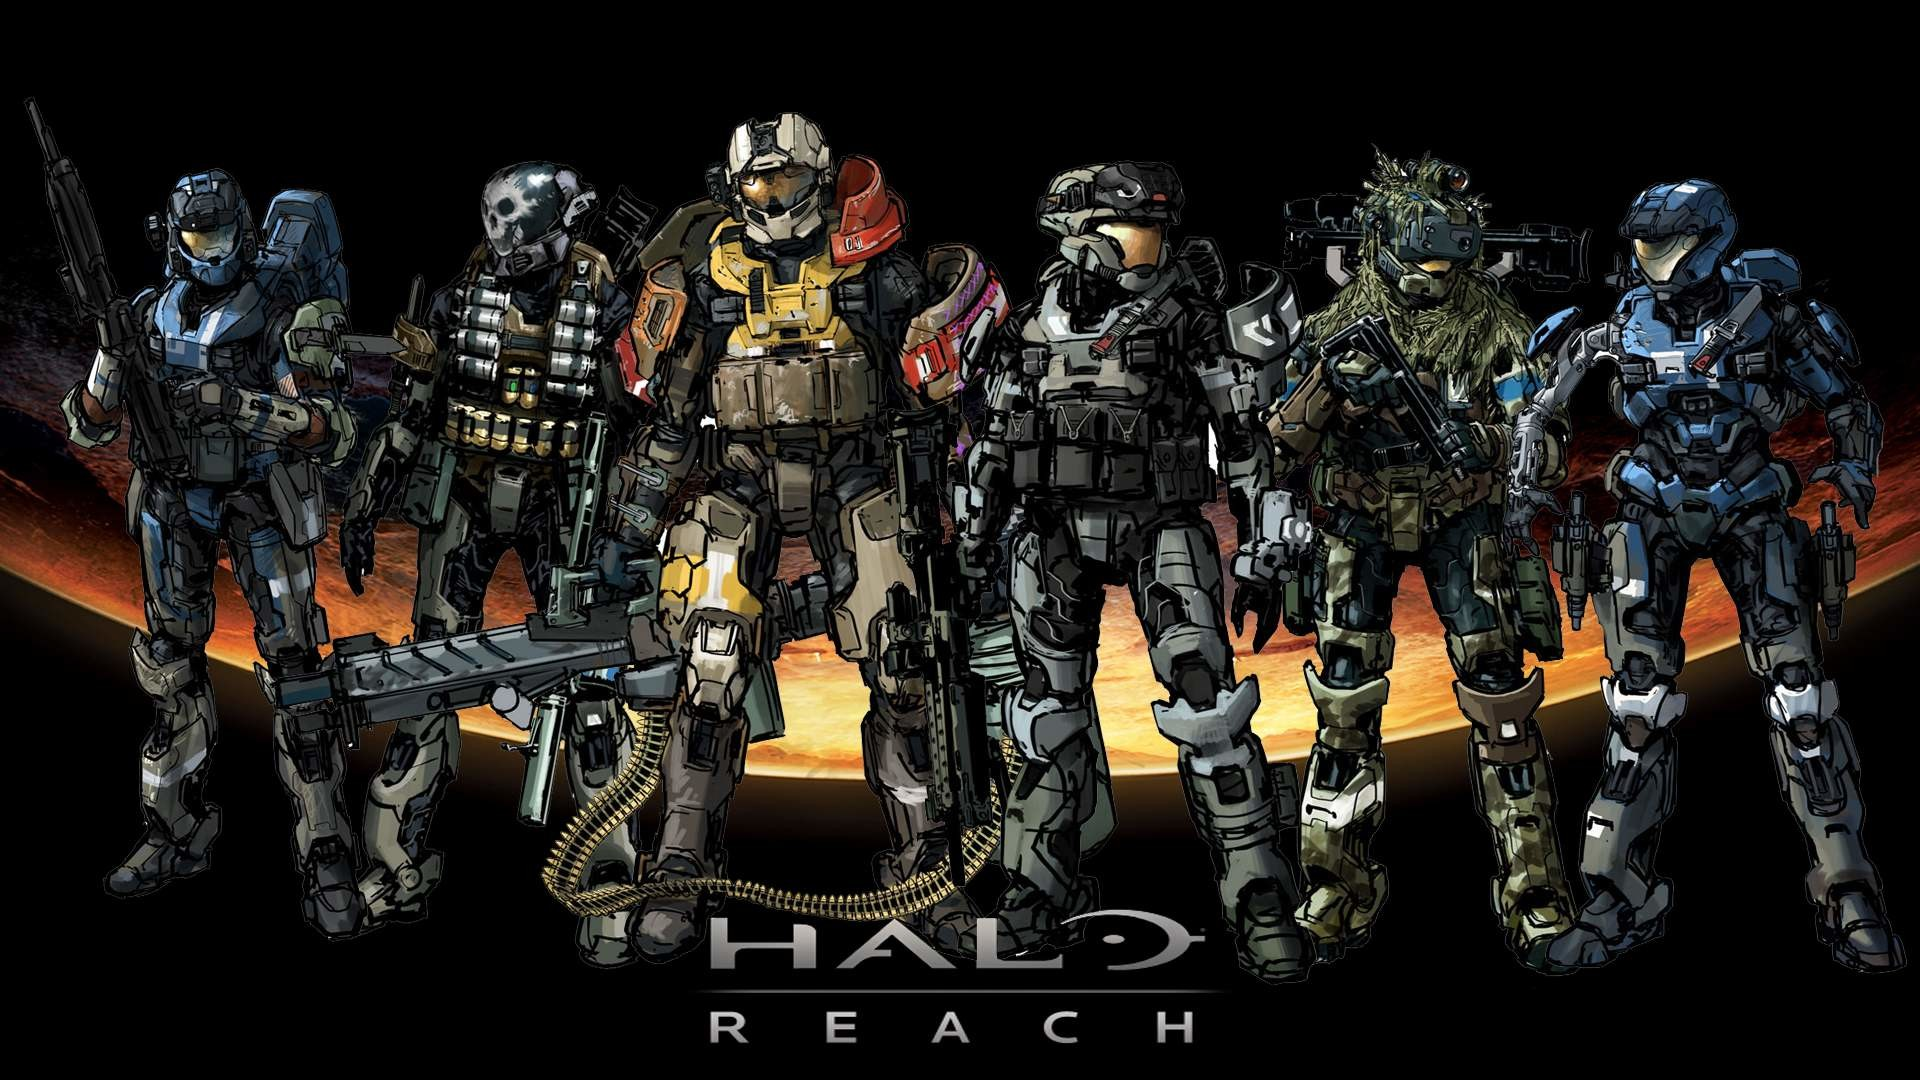 1920x1080 Halo Reach 1080p Wallpaper Halo Reach Wallpape #1265 HD Game .